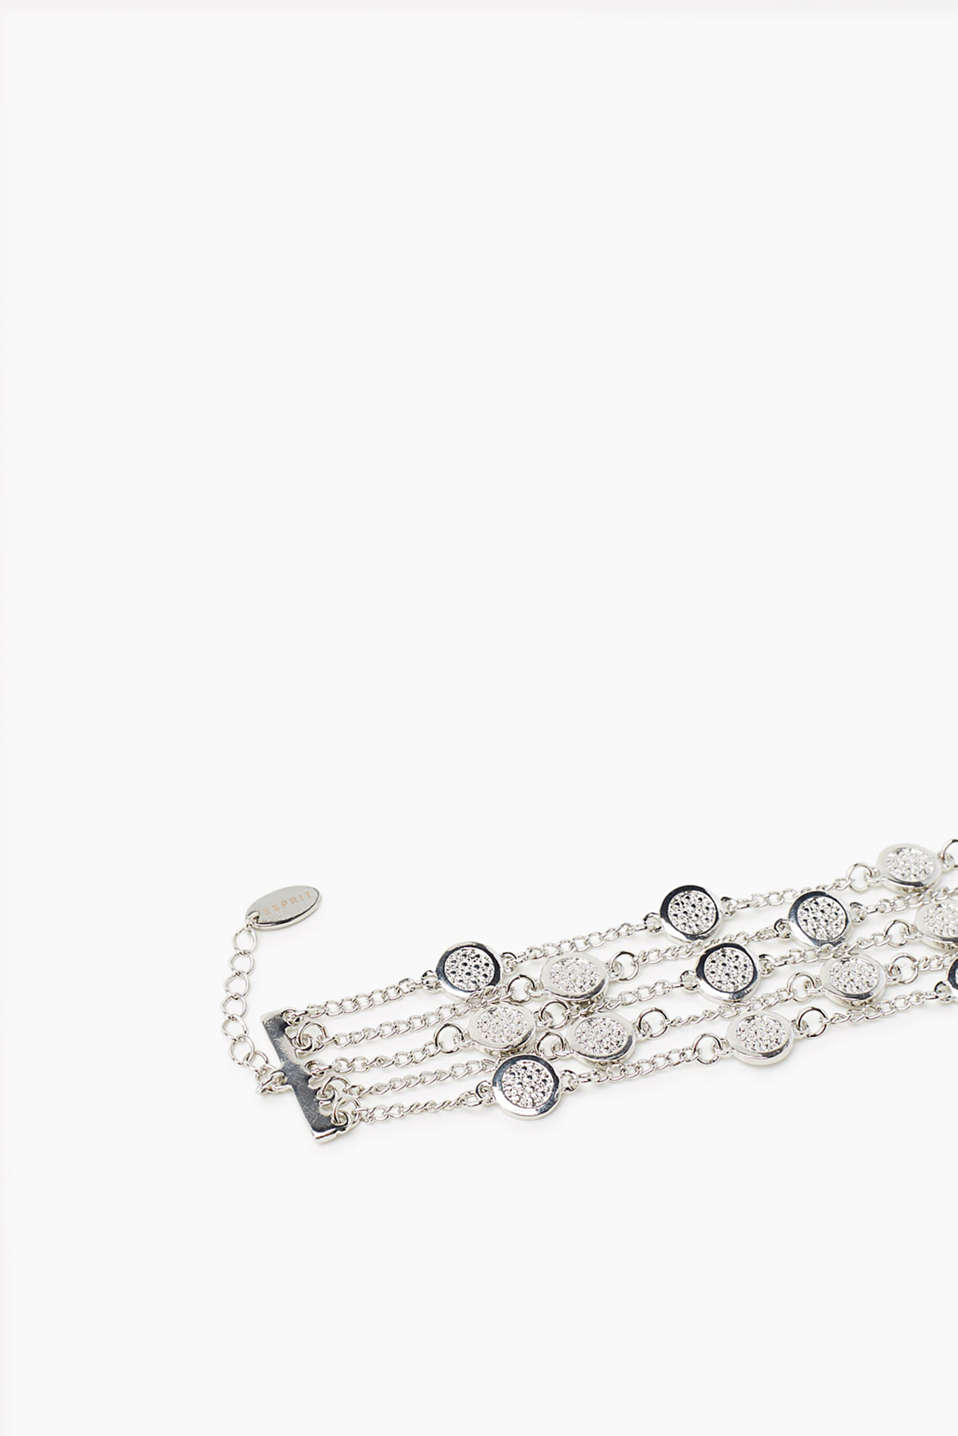 Multi-strand bracelet made from silver metal